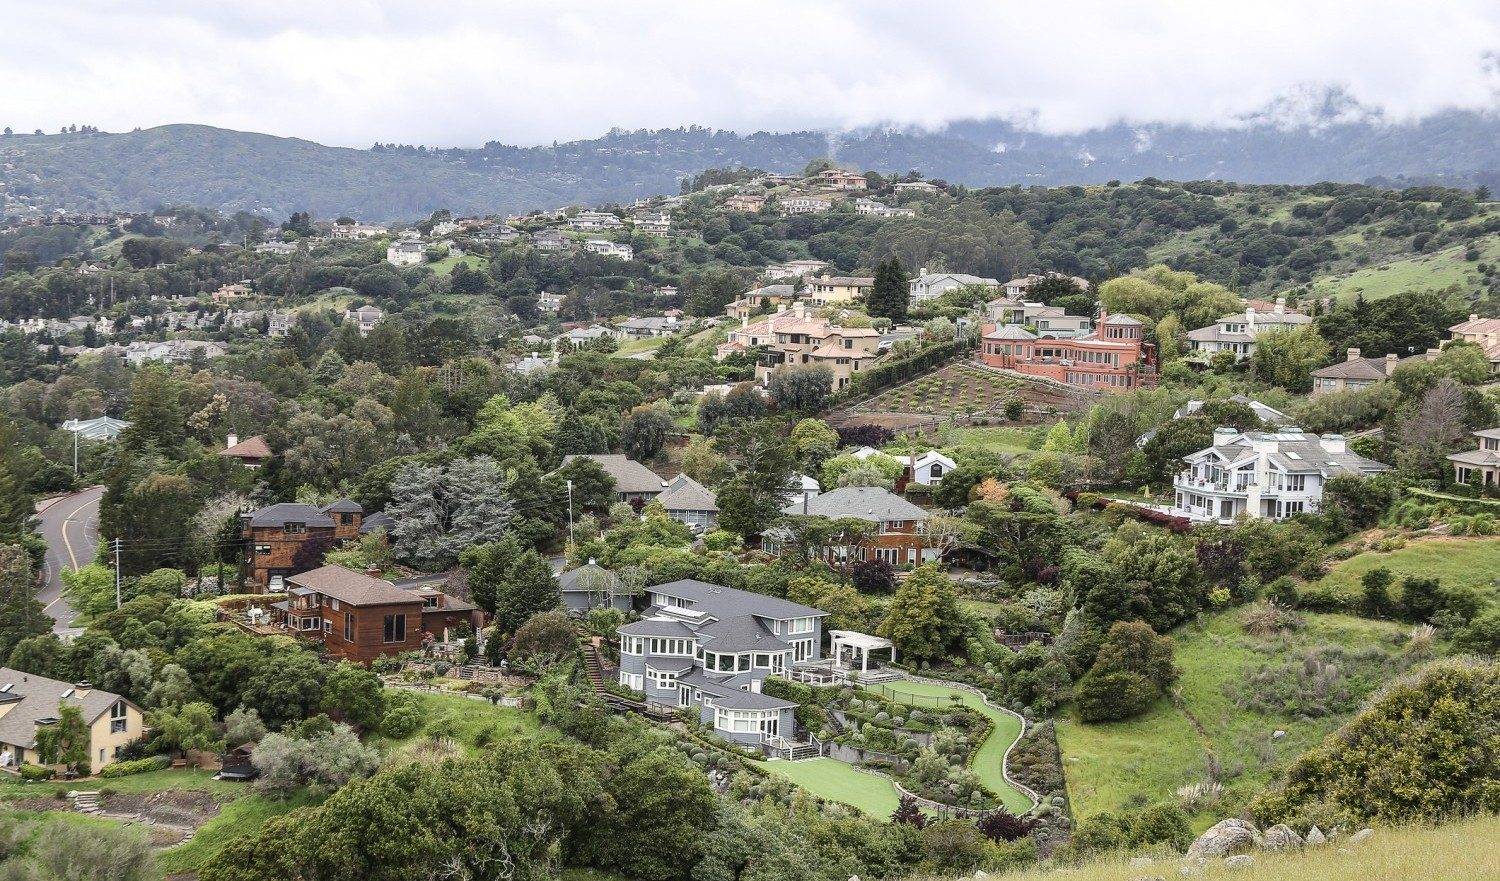 View from the Tiburon Open Space Preserve in Marin County. The views show some of the homes in West Tiburon. Tiburon is an incorporated town in Marin County, California. It is located on the Tiburon Peninsula, which reaches south into the San Francisco Bay.